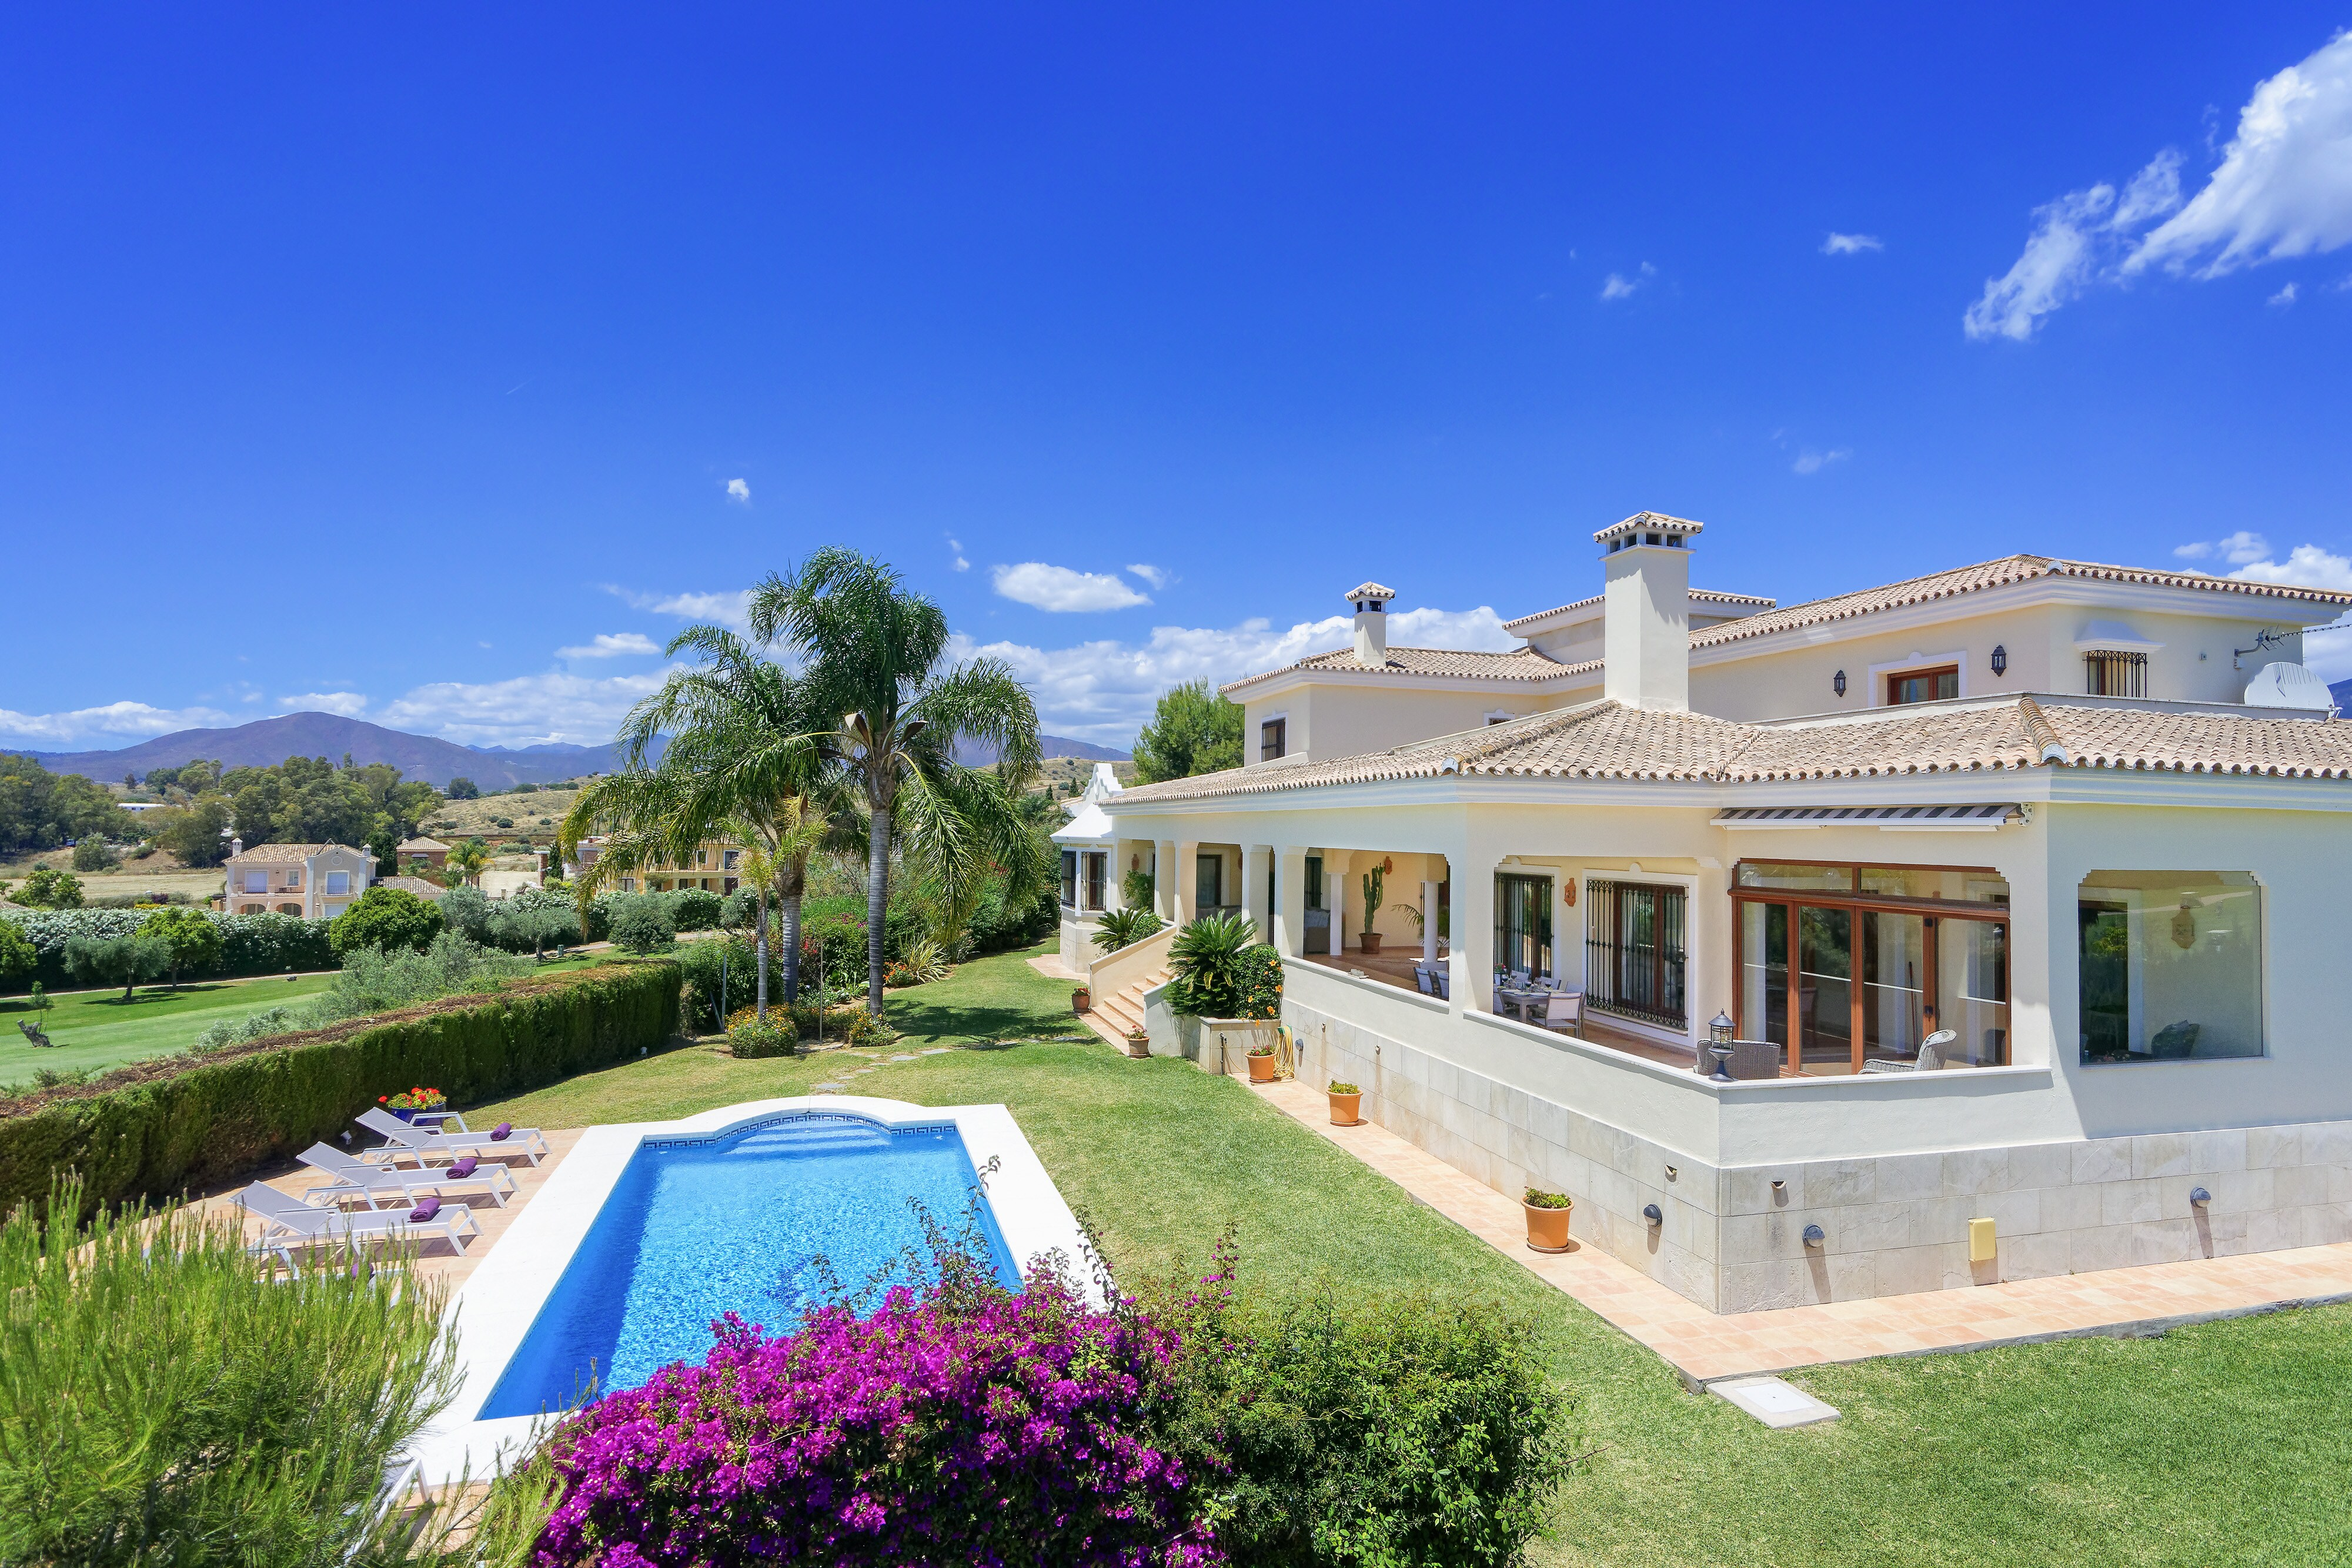 Charming villa located in the heart of Mijas Golf